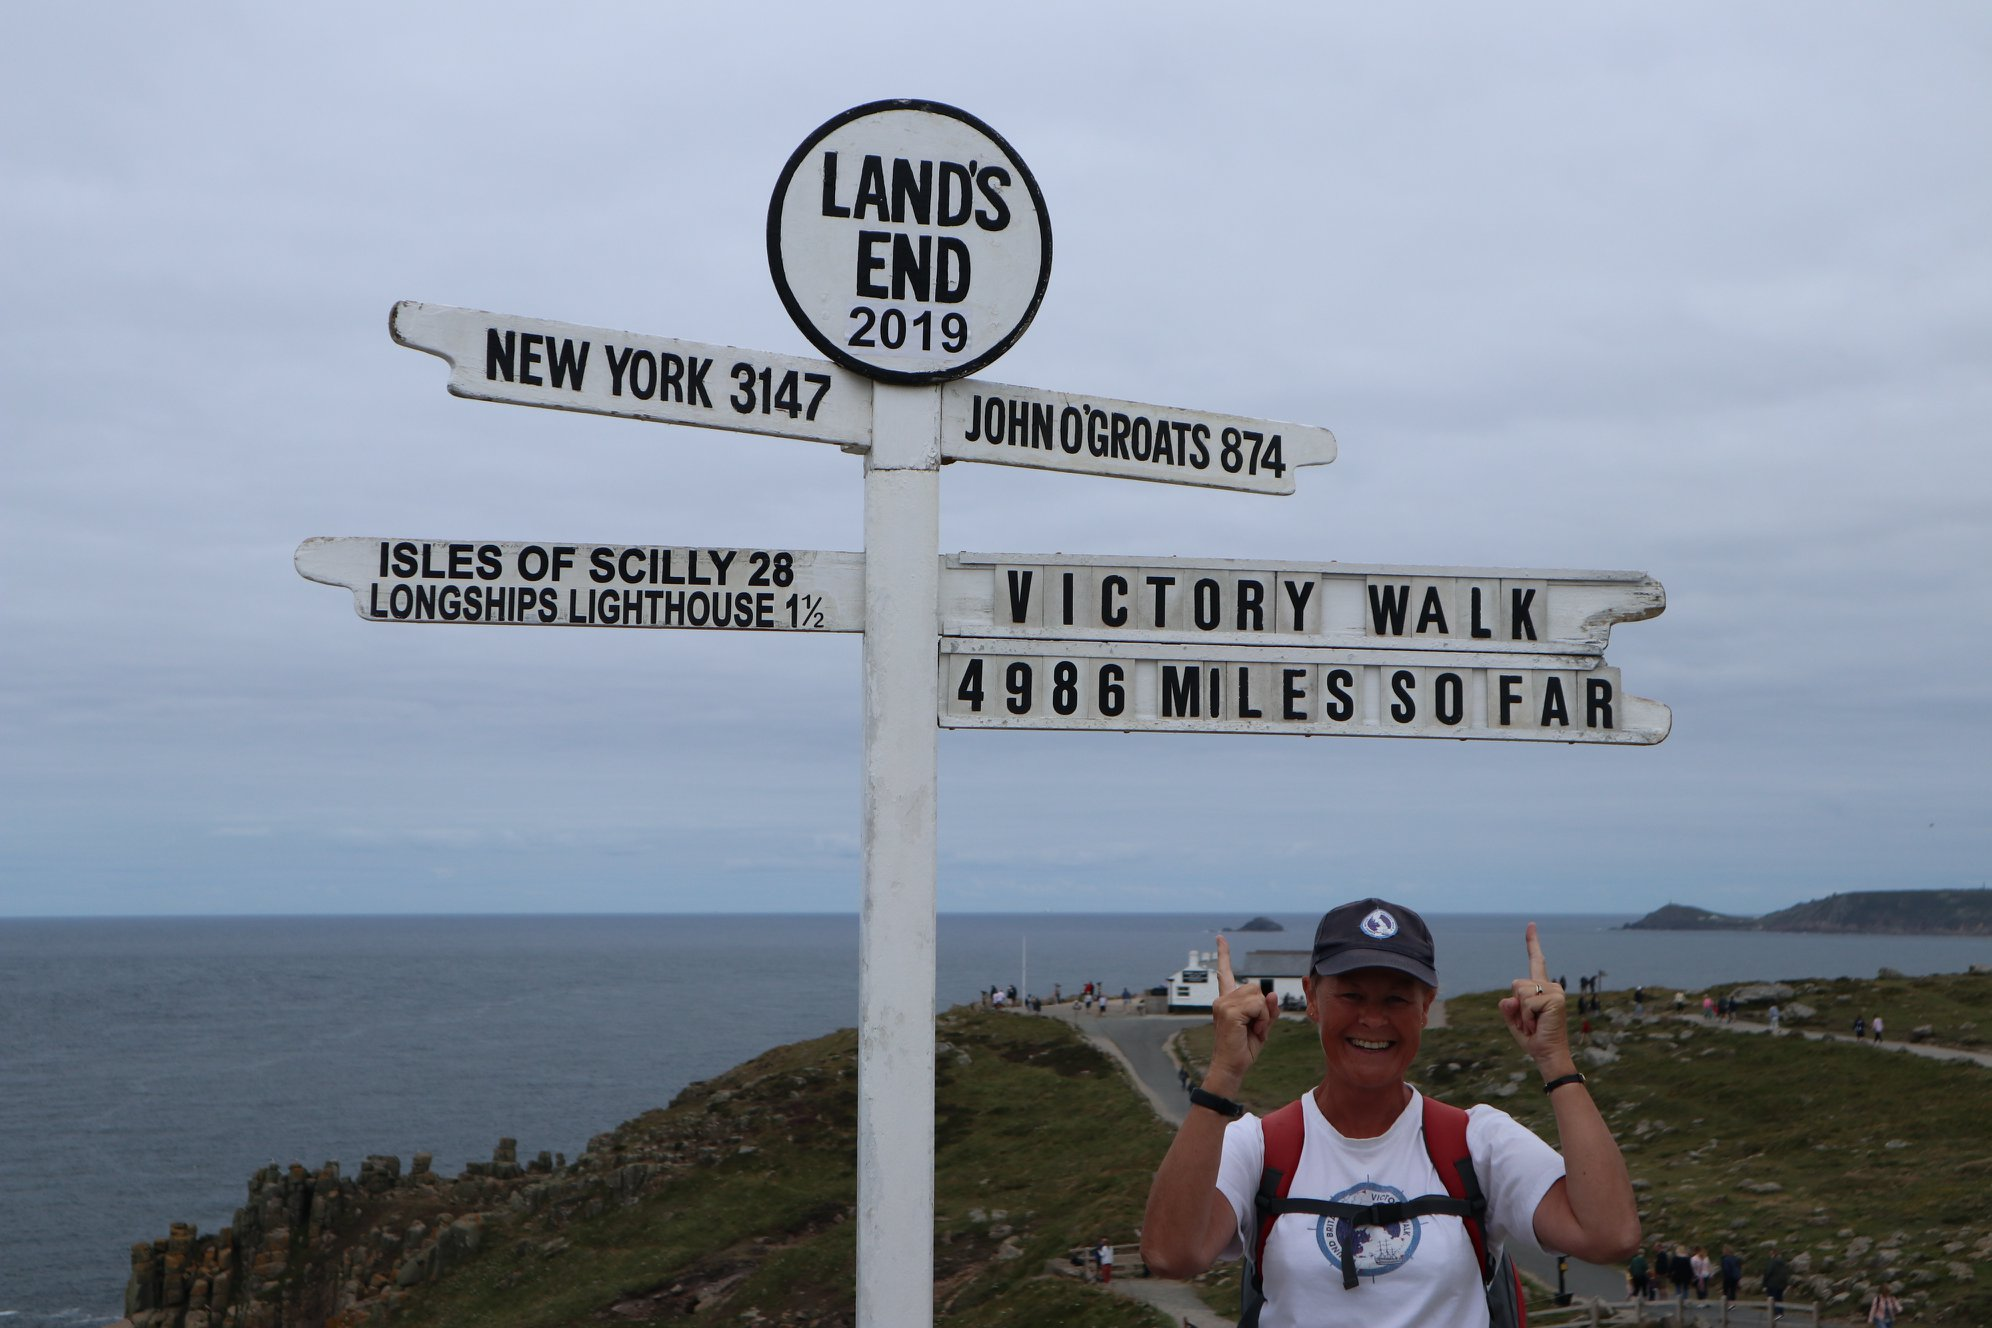 Jane at Land's End